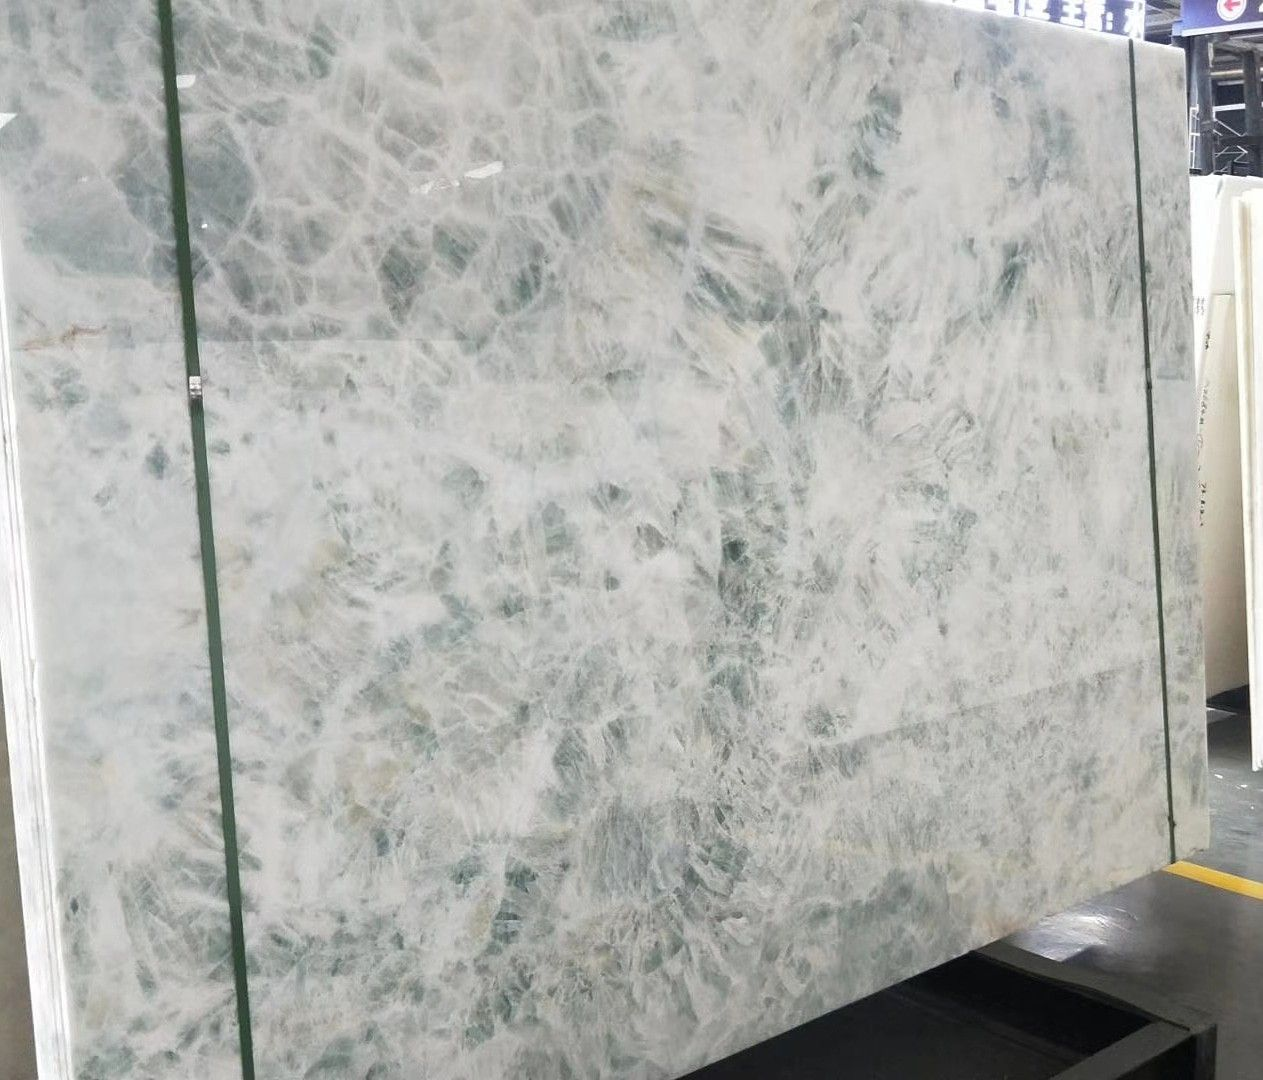 Polished Blue Ice White Onyx Slab Price Onyx Tile Onyx Marble White Onyx